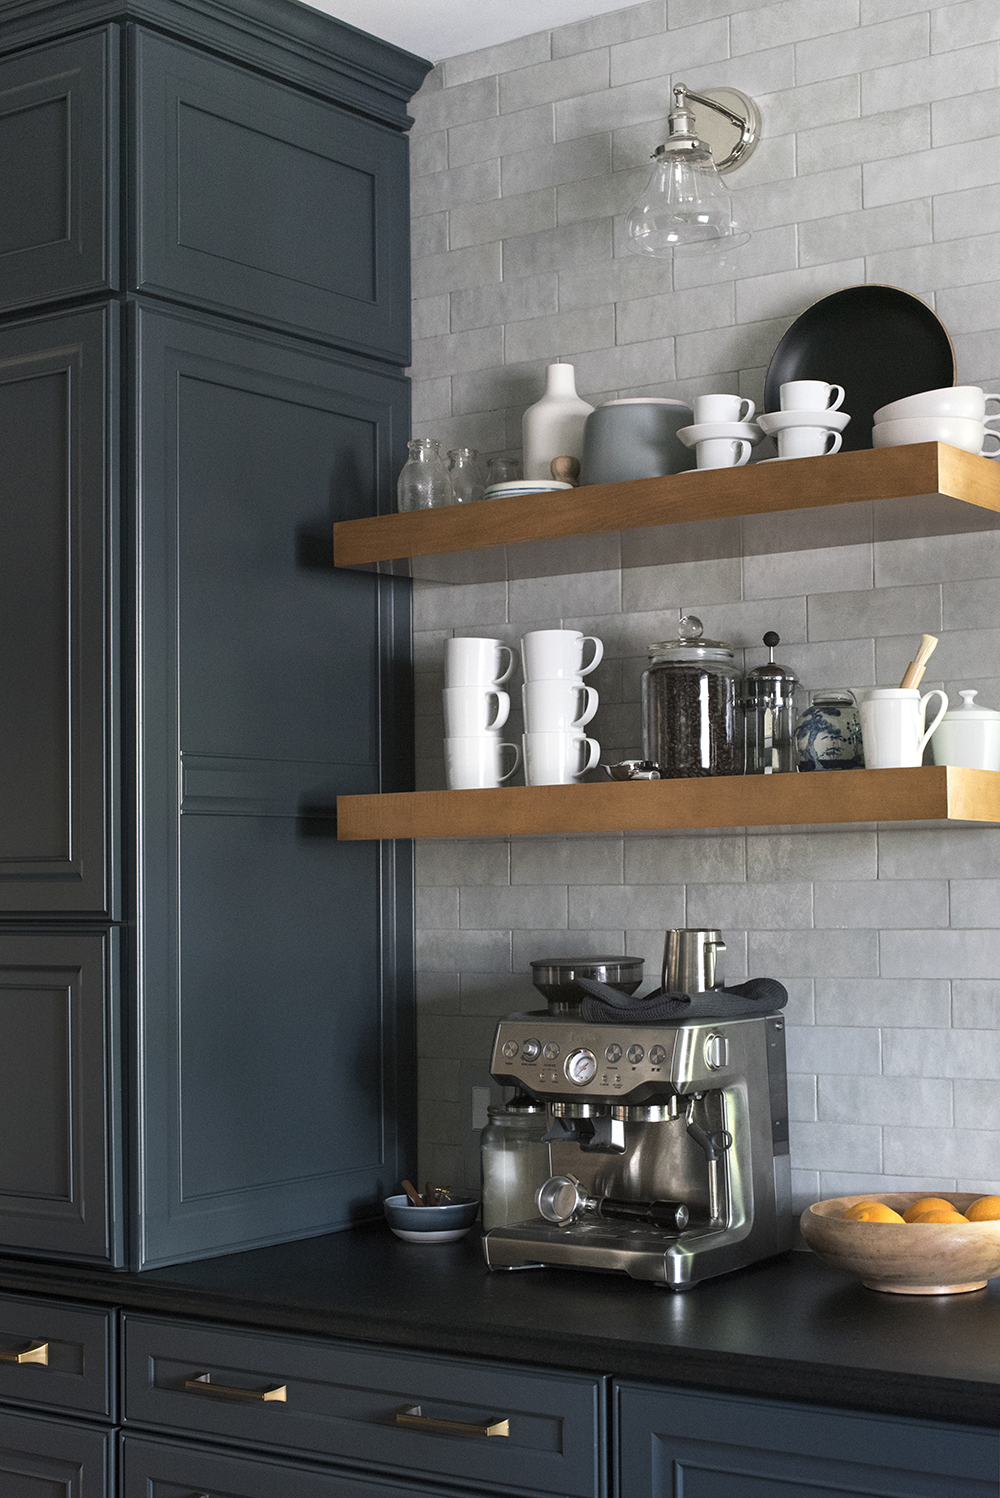 Floating Shelves at Coffee Bar in Kitchen - Room For Tuesday